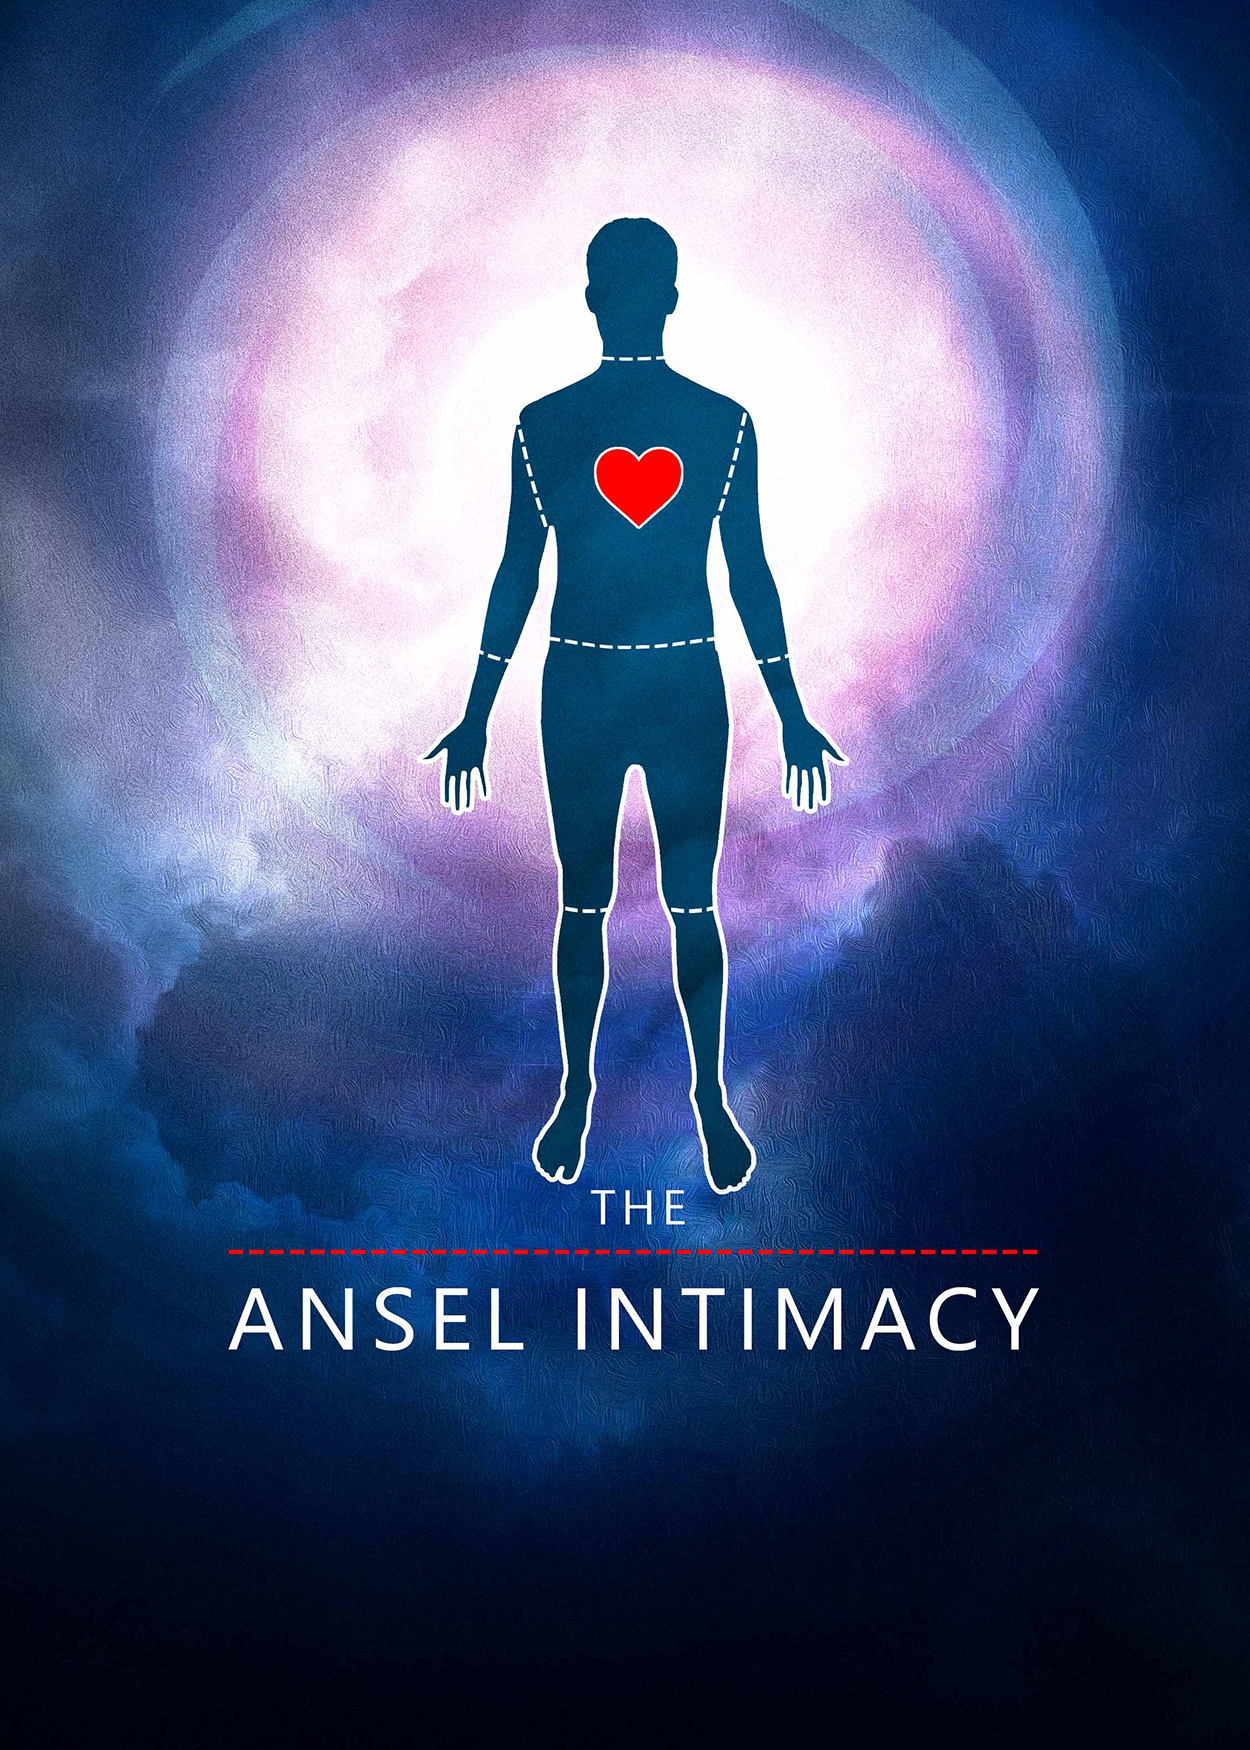 Key Art from The Ansel Intimacy (2014). Dark clouds surround a bright light at the center of the image. An outline of a man is at the center. There are no other details about the man except an enlarged red heart (shape) at the center of his chest.